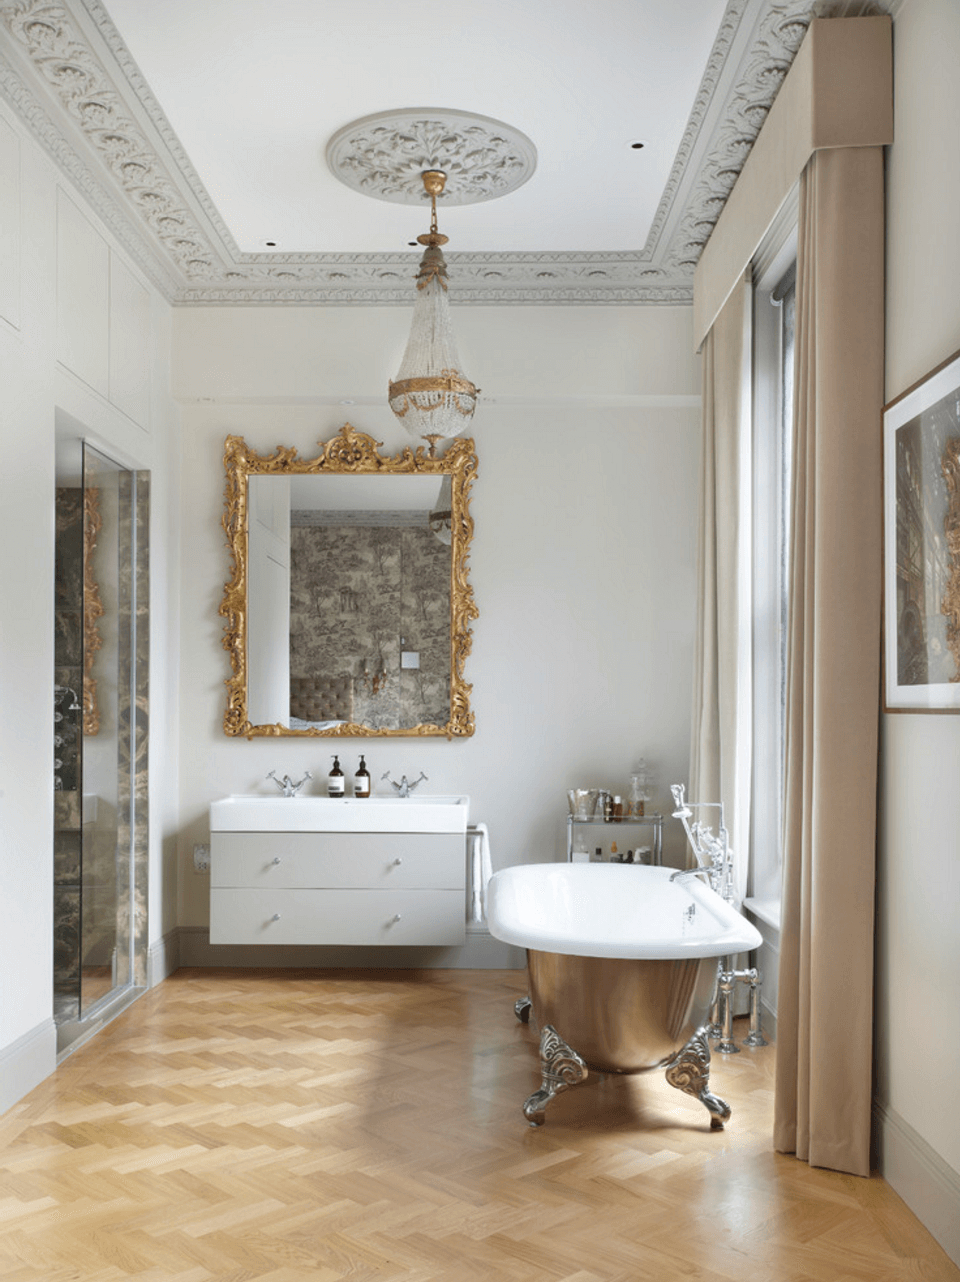 Best And Newest 38 Bathroom Mirror Ideas To Reflect Your Style – Freshome With Small Bathroom Wall Mirrors (View 11 of 20)